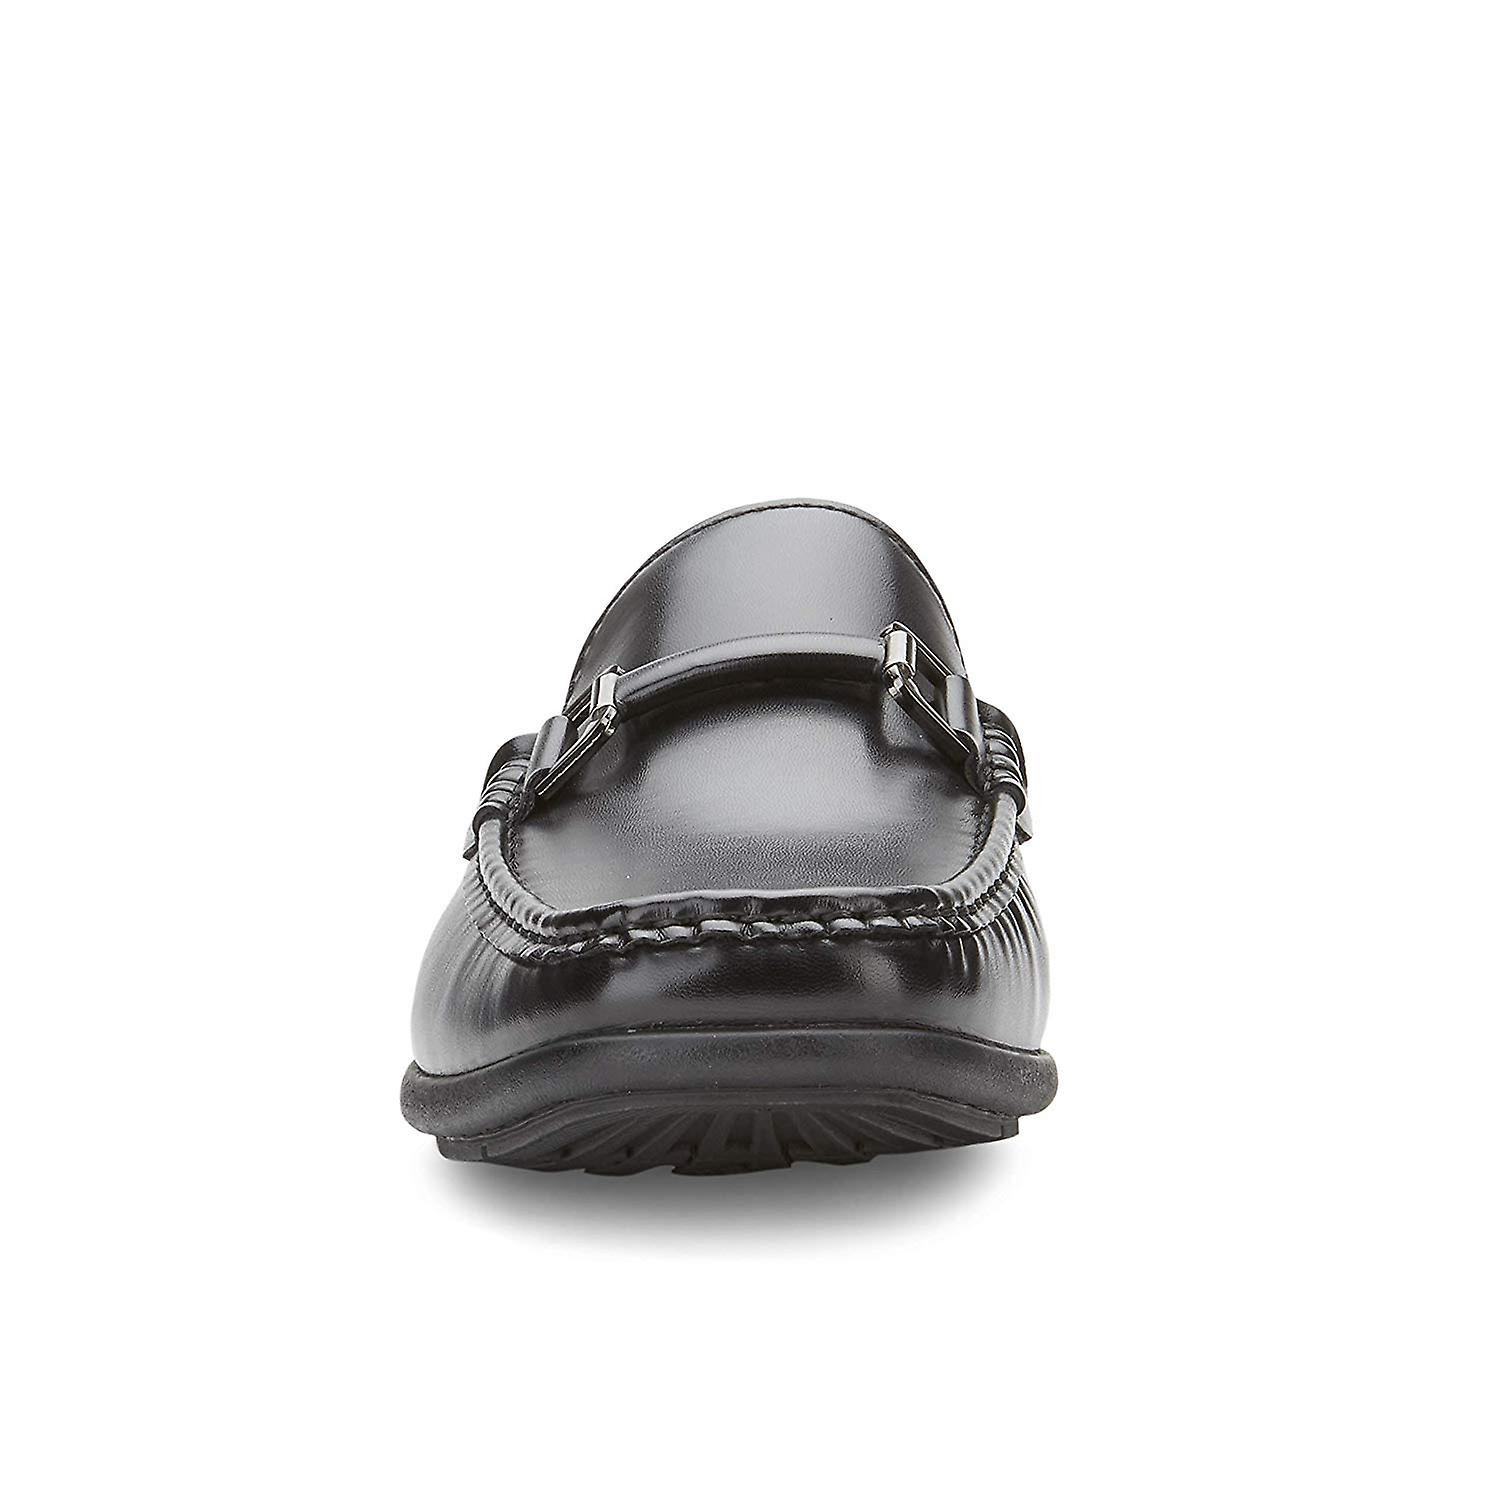 X RAY Homme-apos;s Tasman Moccasin Casual